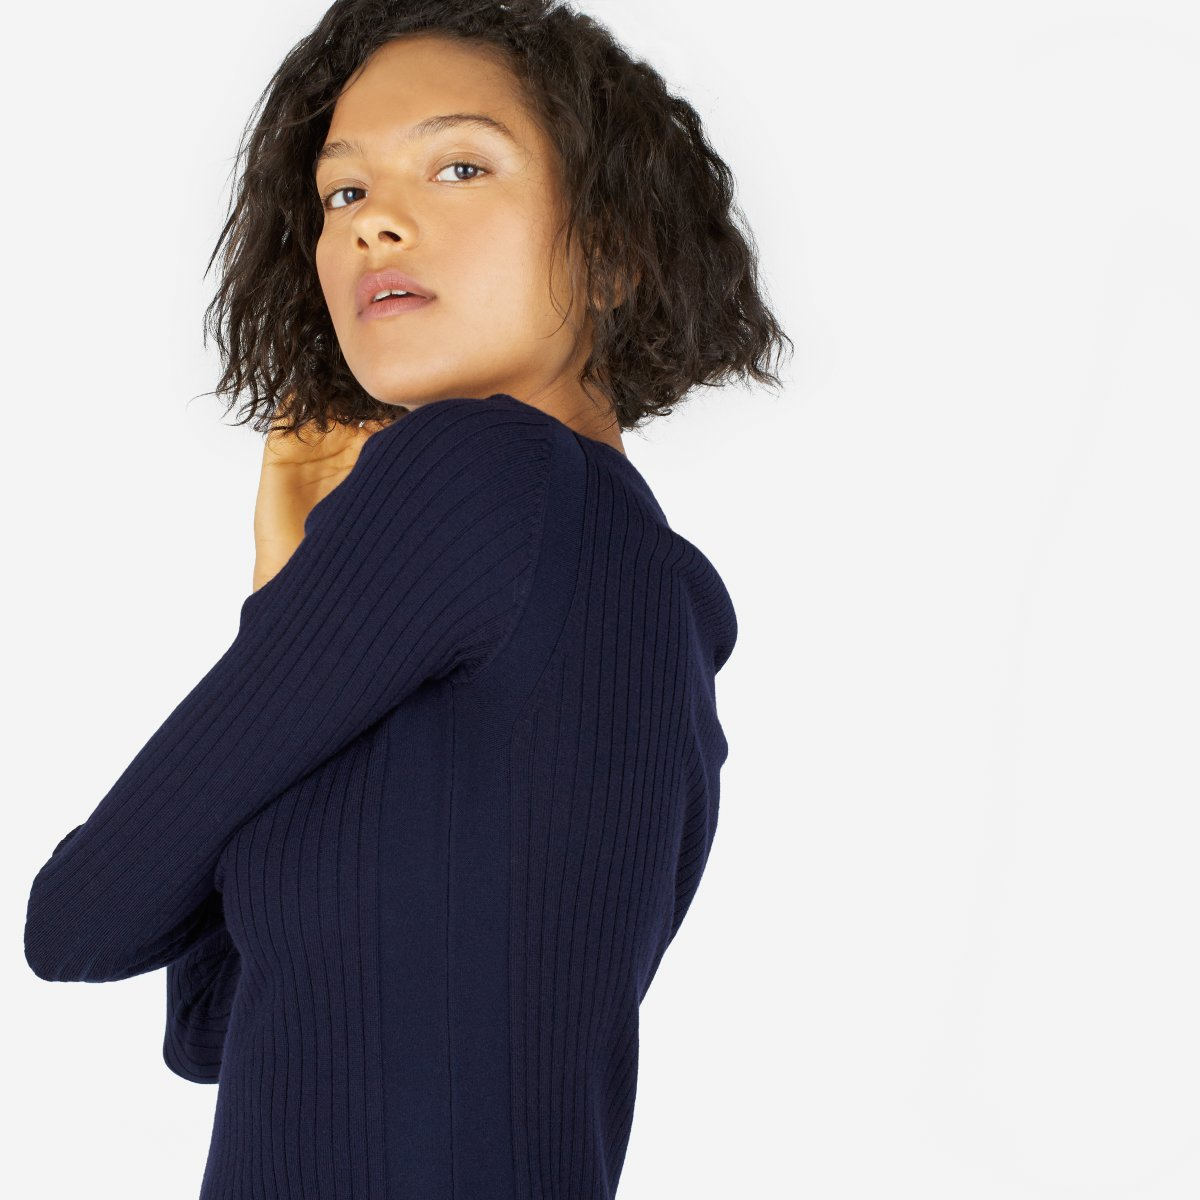 c1ee3c329fd ... Luxe Wool Ribbed Long. Your browser does not support HTML5 video. Here  is the link to the video w ribbed dress navy.